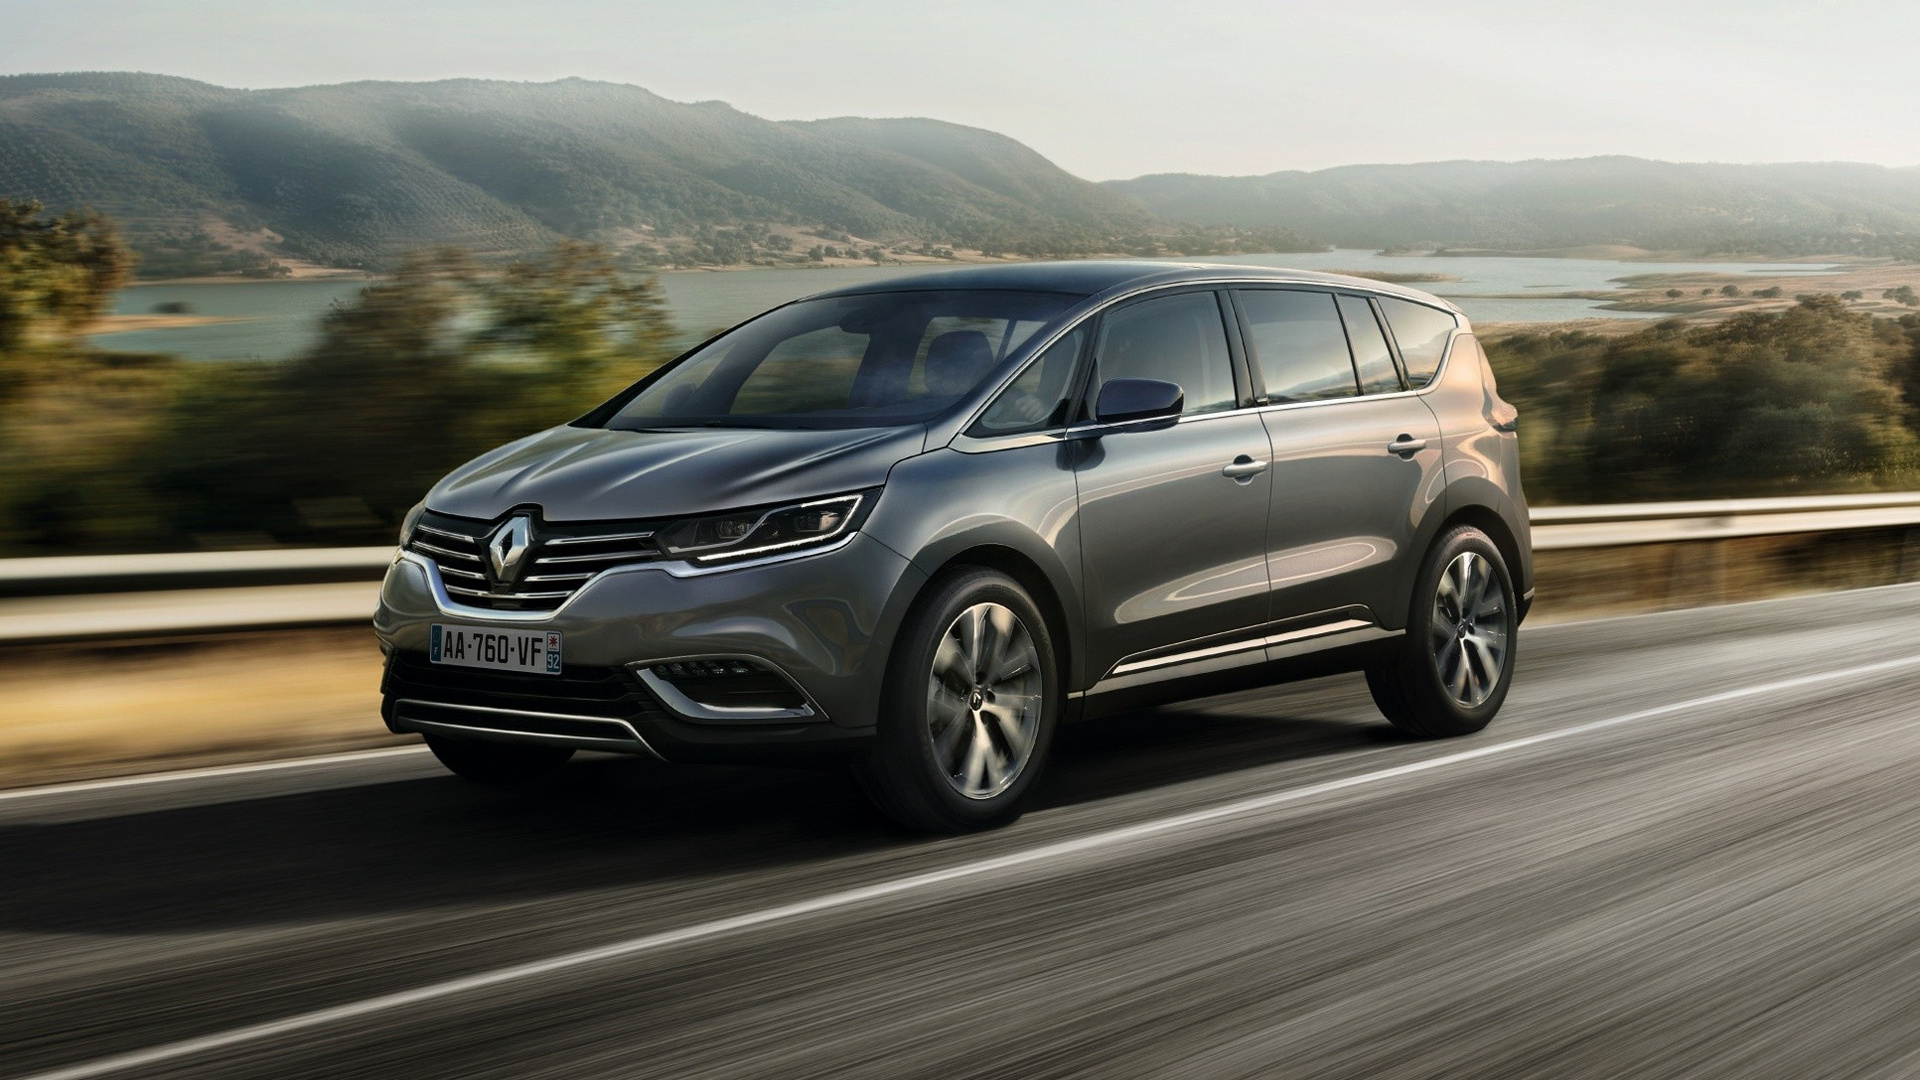 renault espace 2015 wallpapers and hd images car pixel. Black Bedroom Furniture Sets. Home Design Ideas